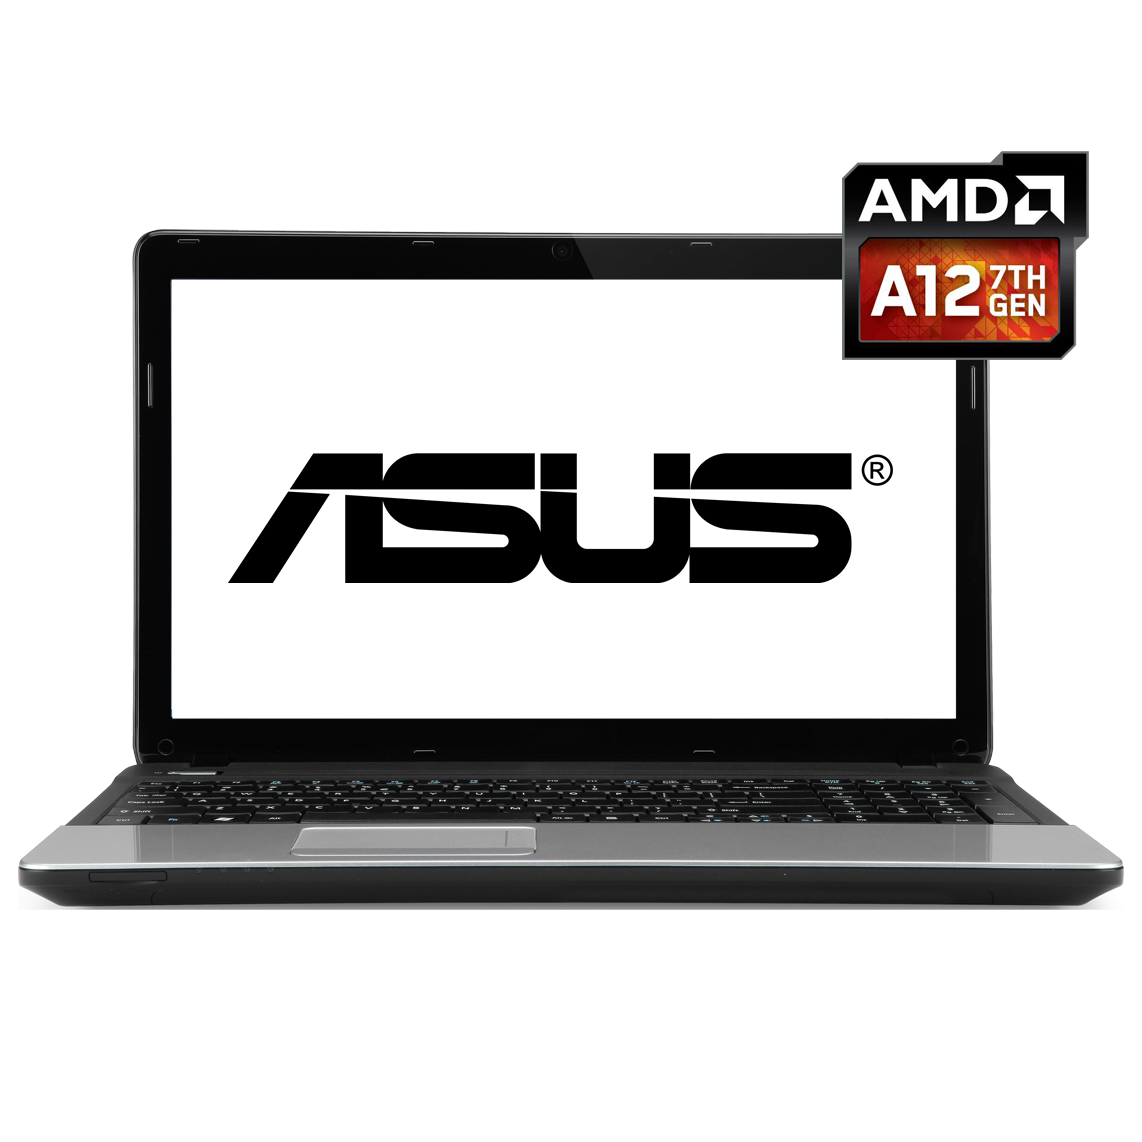 ASUS - 13 inch AMD A12